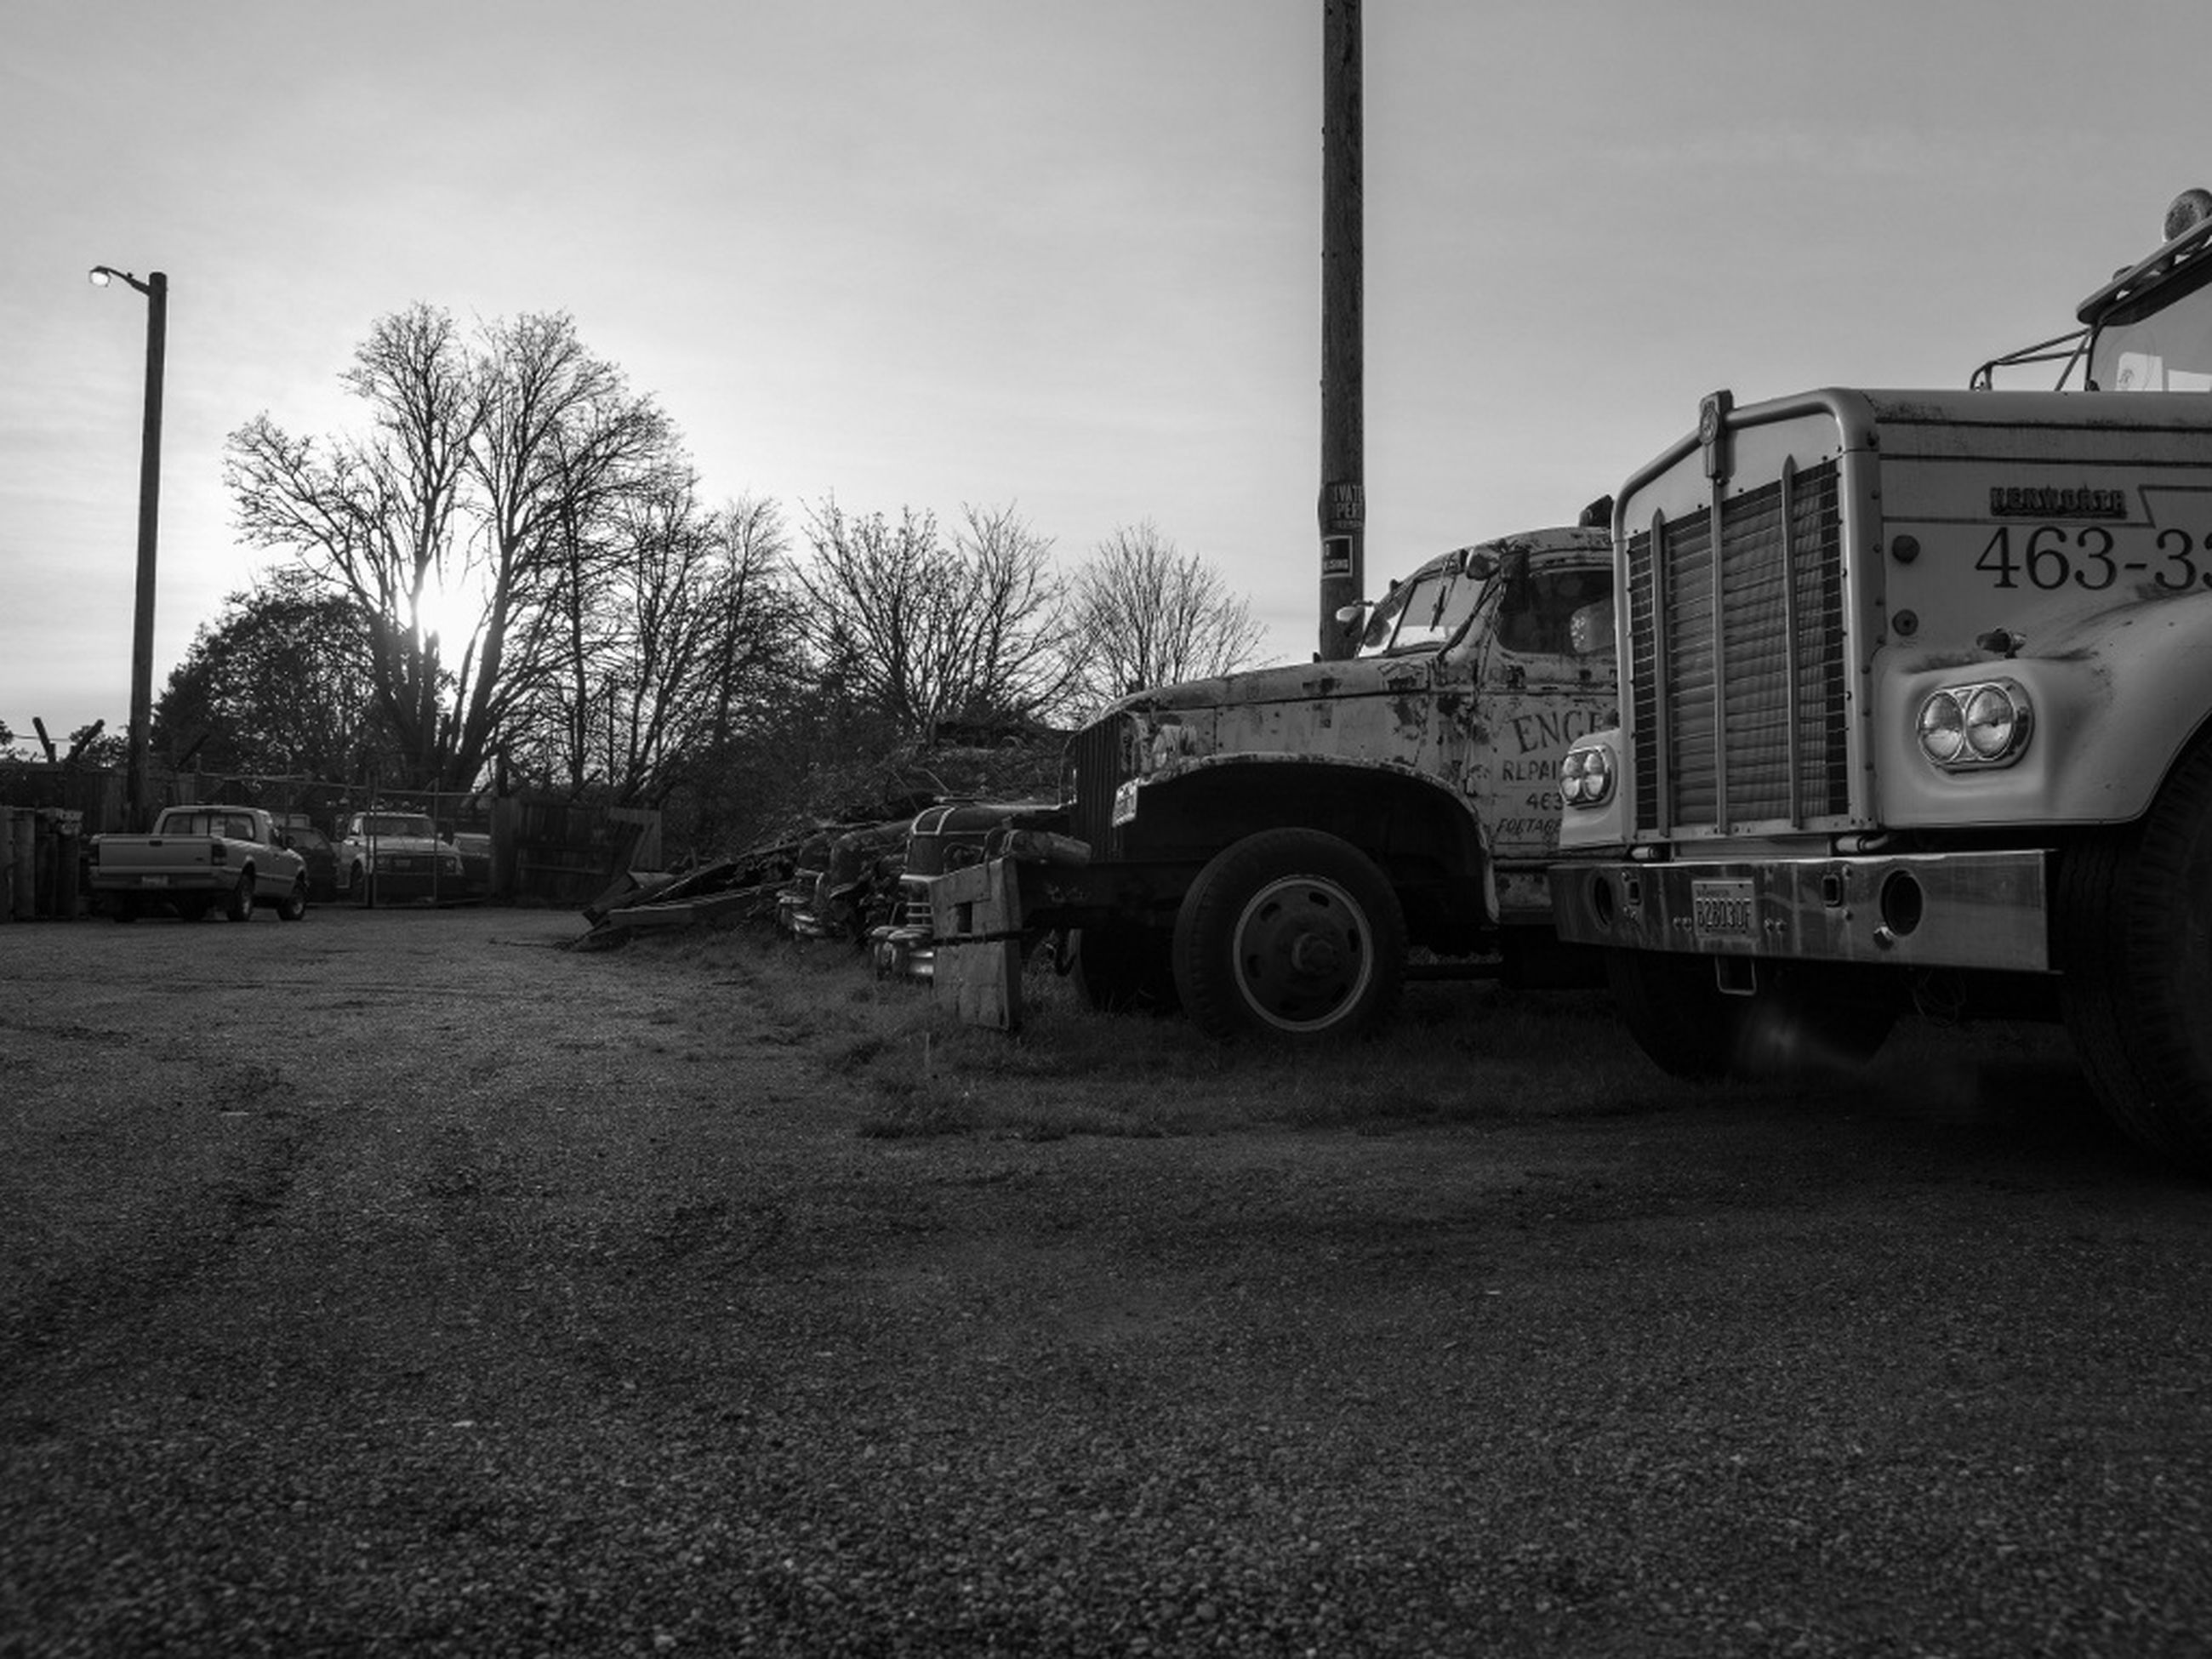 transportation, land vehicle, tree, architecture, sky, mode of transport, built structure, building exterior, car, street, road, day, outdoors, no people, field, sunlight, clear sky, stationary, travel, bicycle